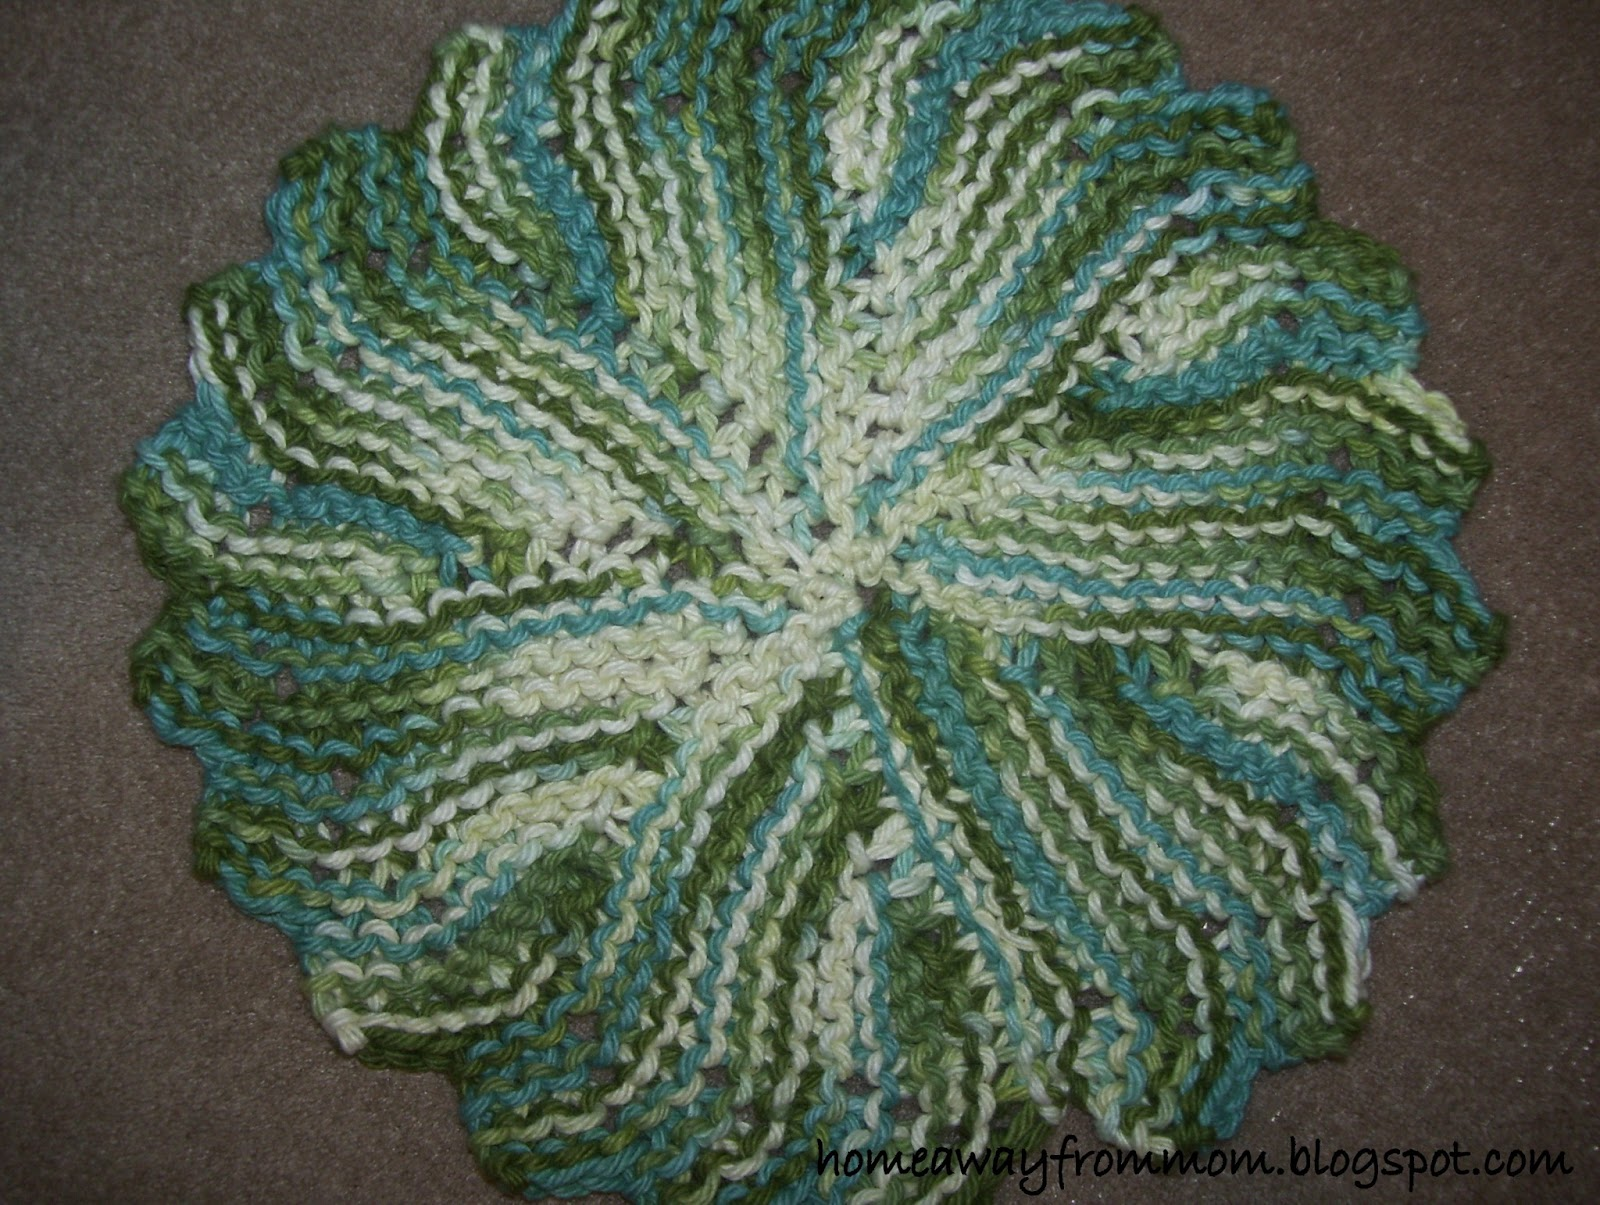 Knitted Circular Dishcloth Patterns : Home Away From Mom 2: Knitting Project #3/ Round Knit Dishcloth